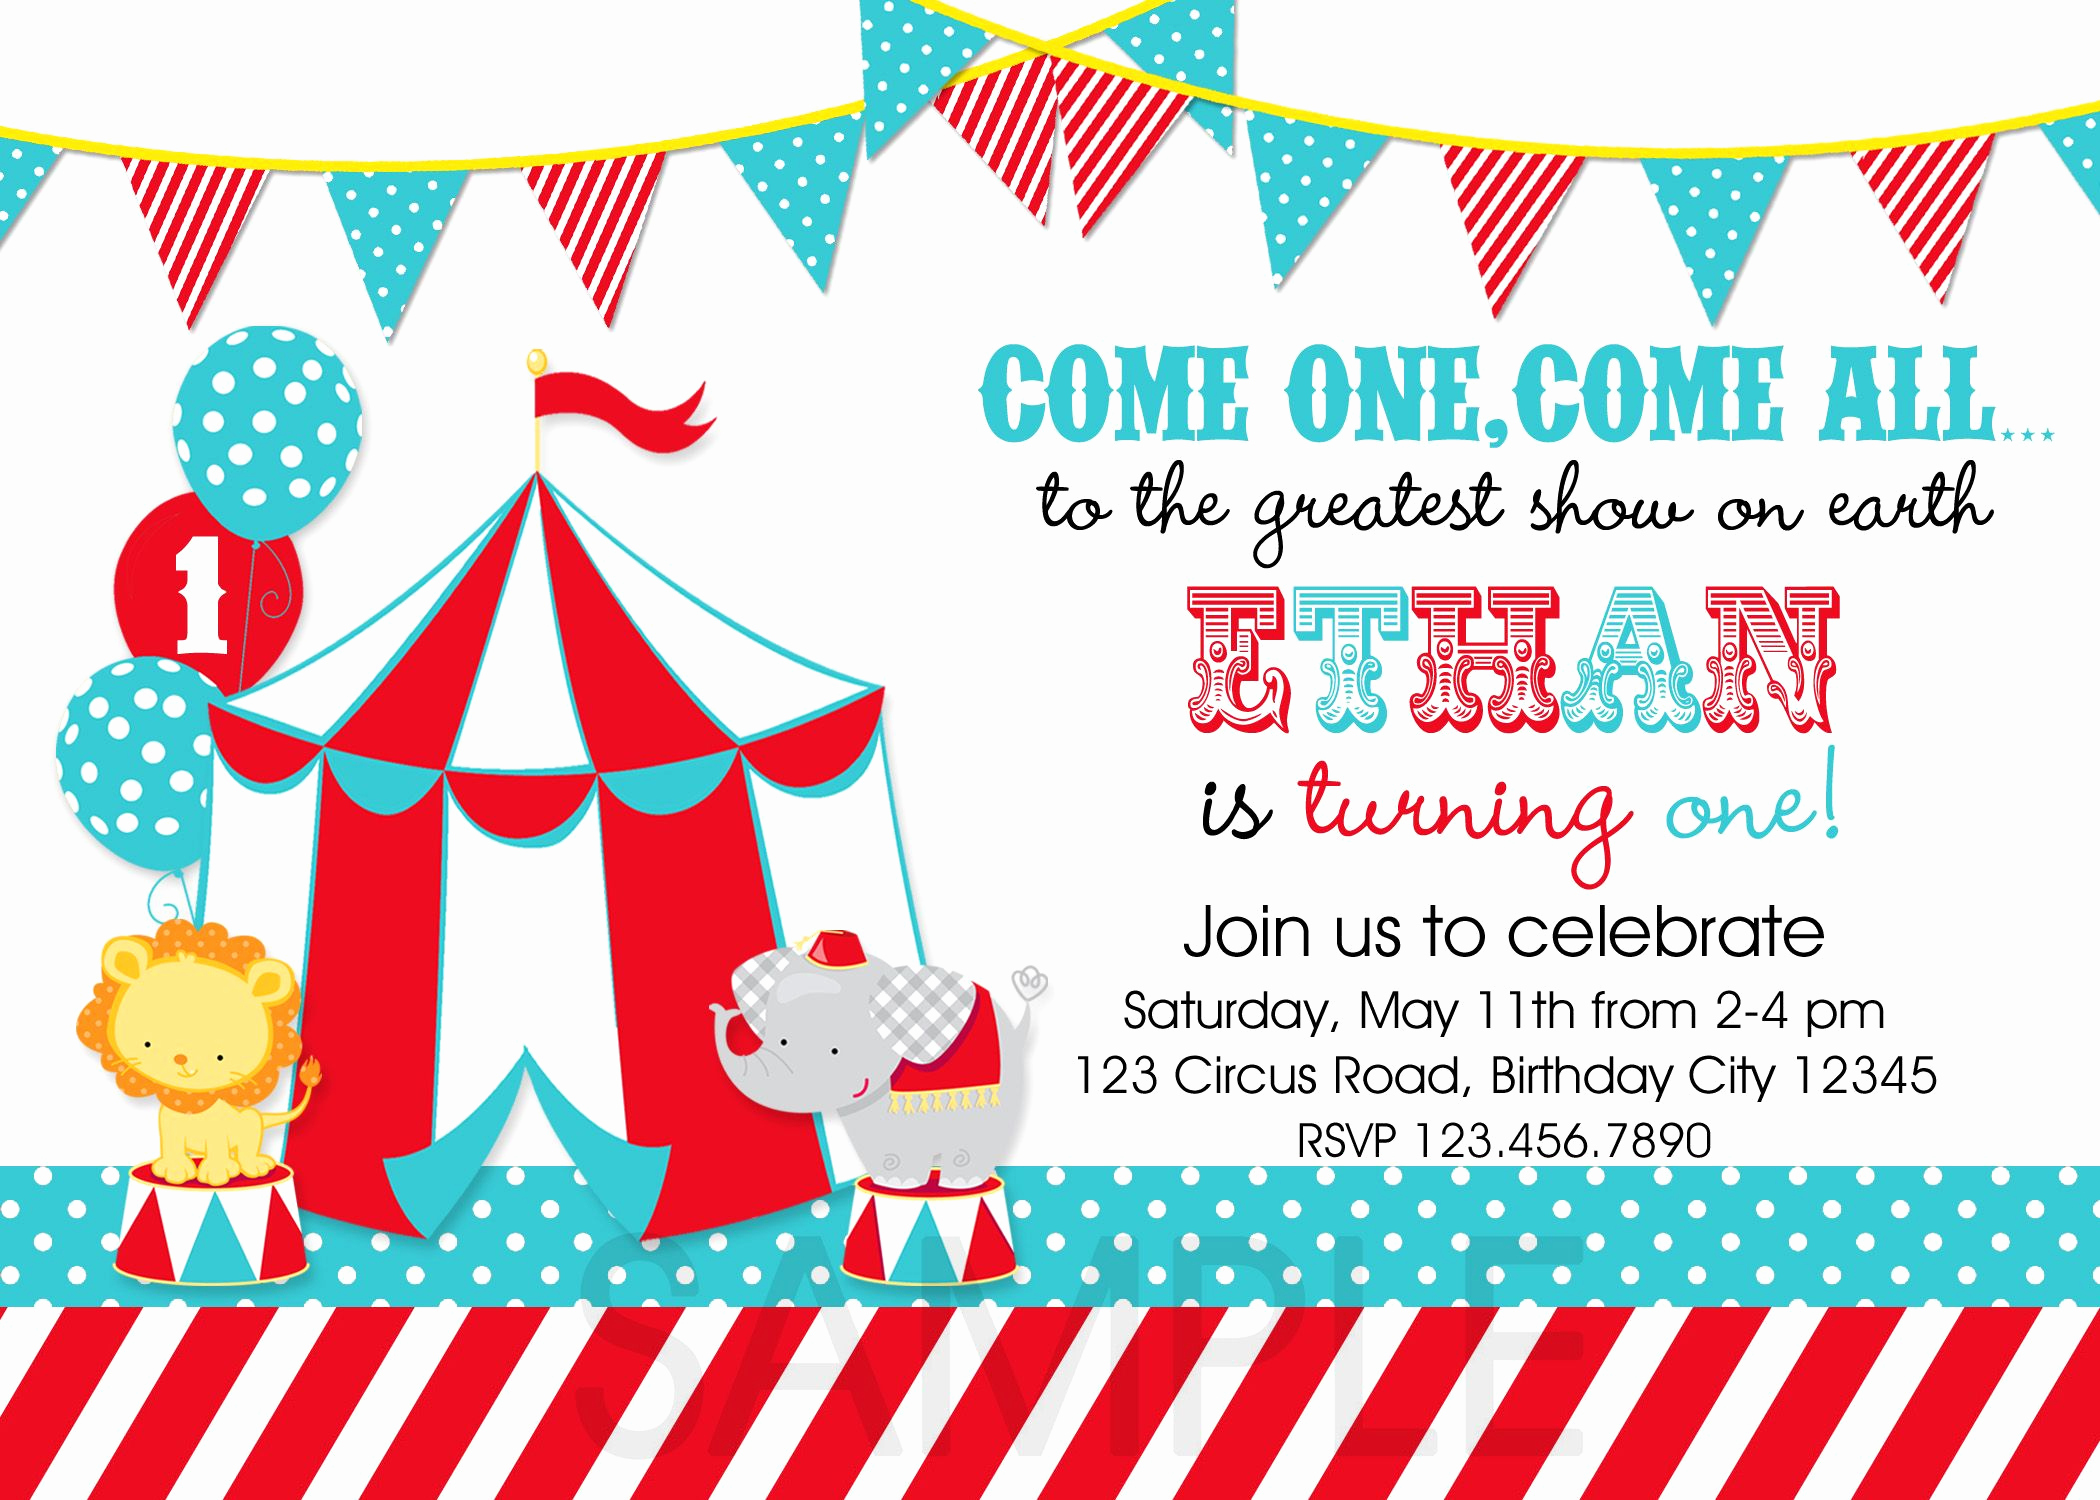 Carnival Invitation Template Free Fresh Circus Party Invitations Template 3zcfy9xw